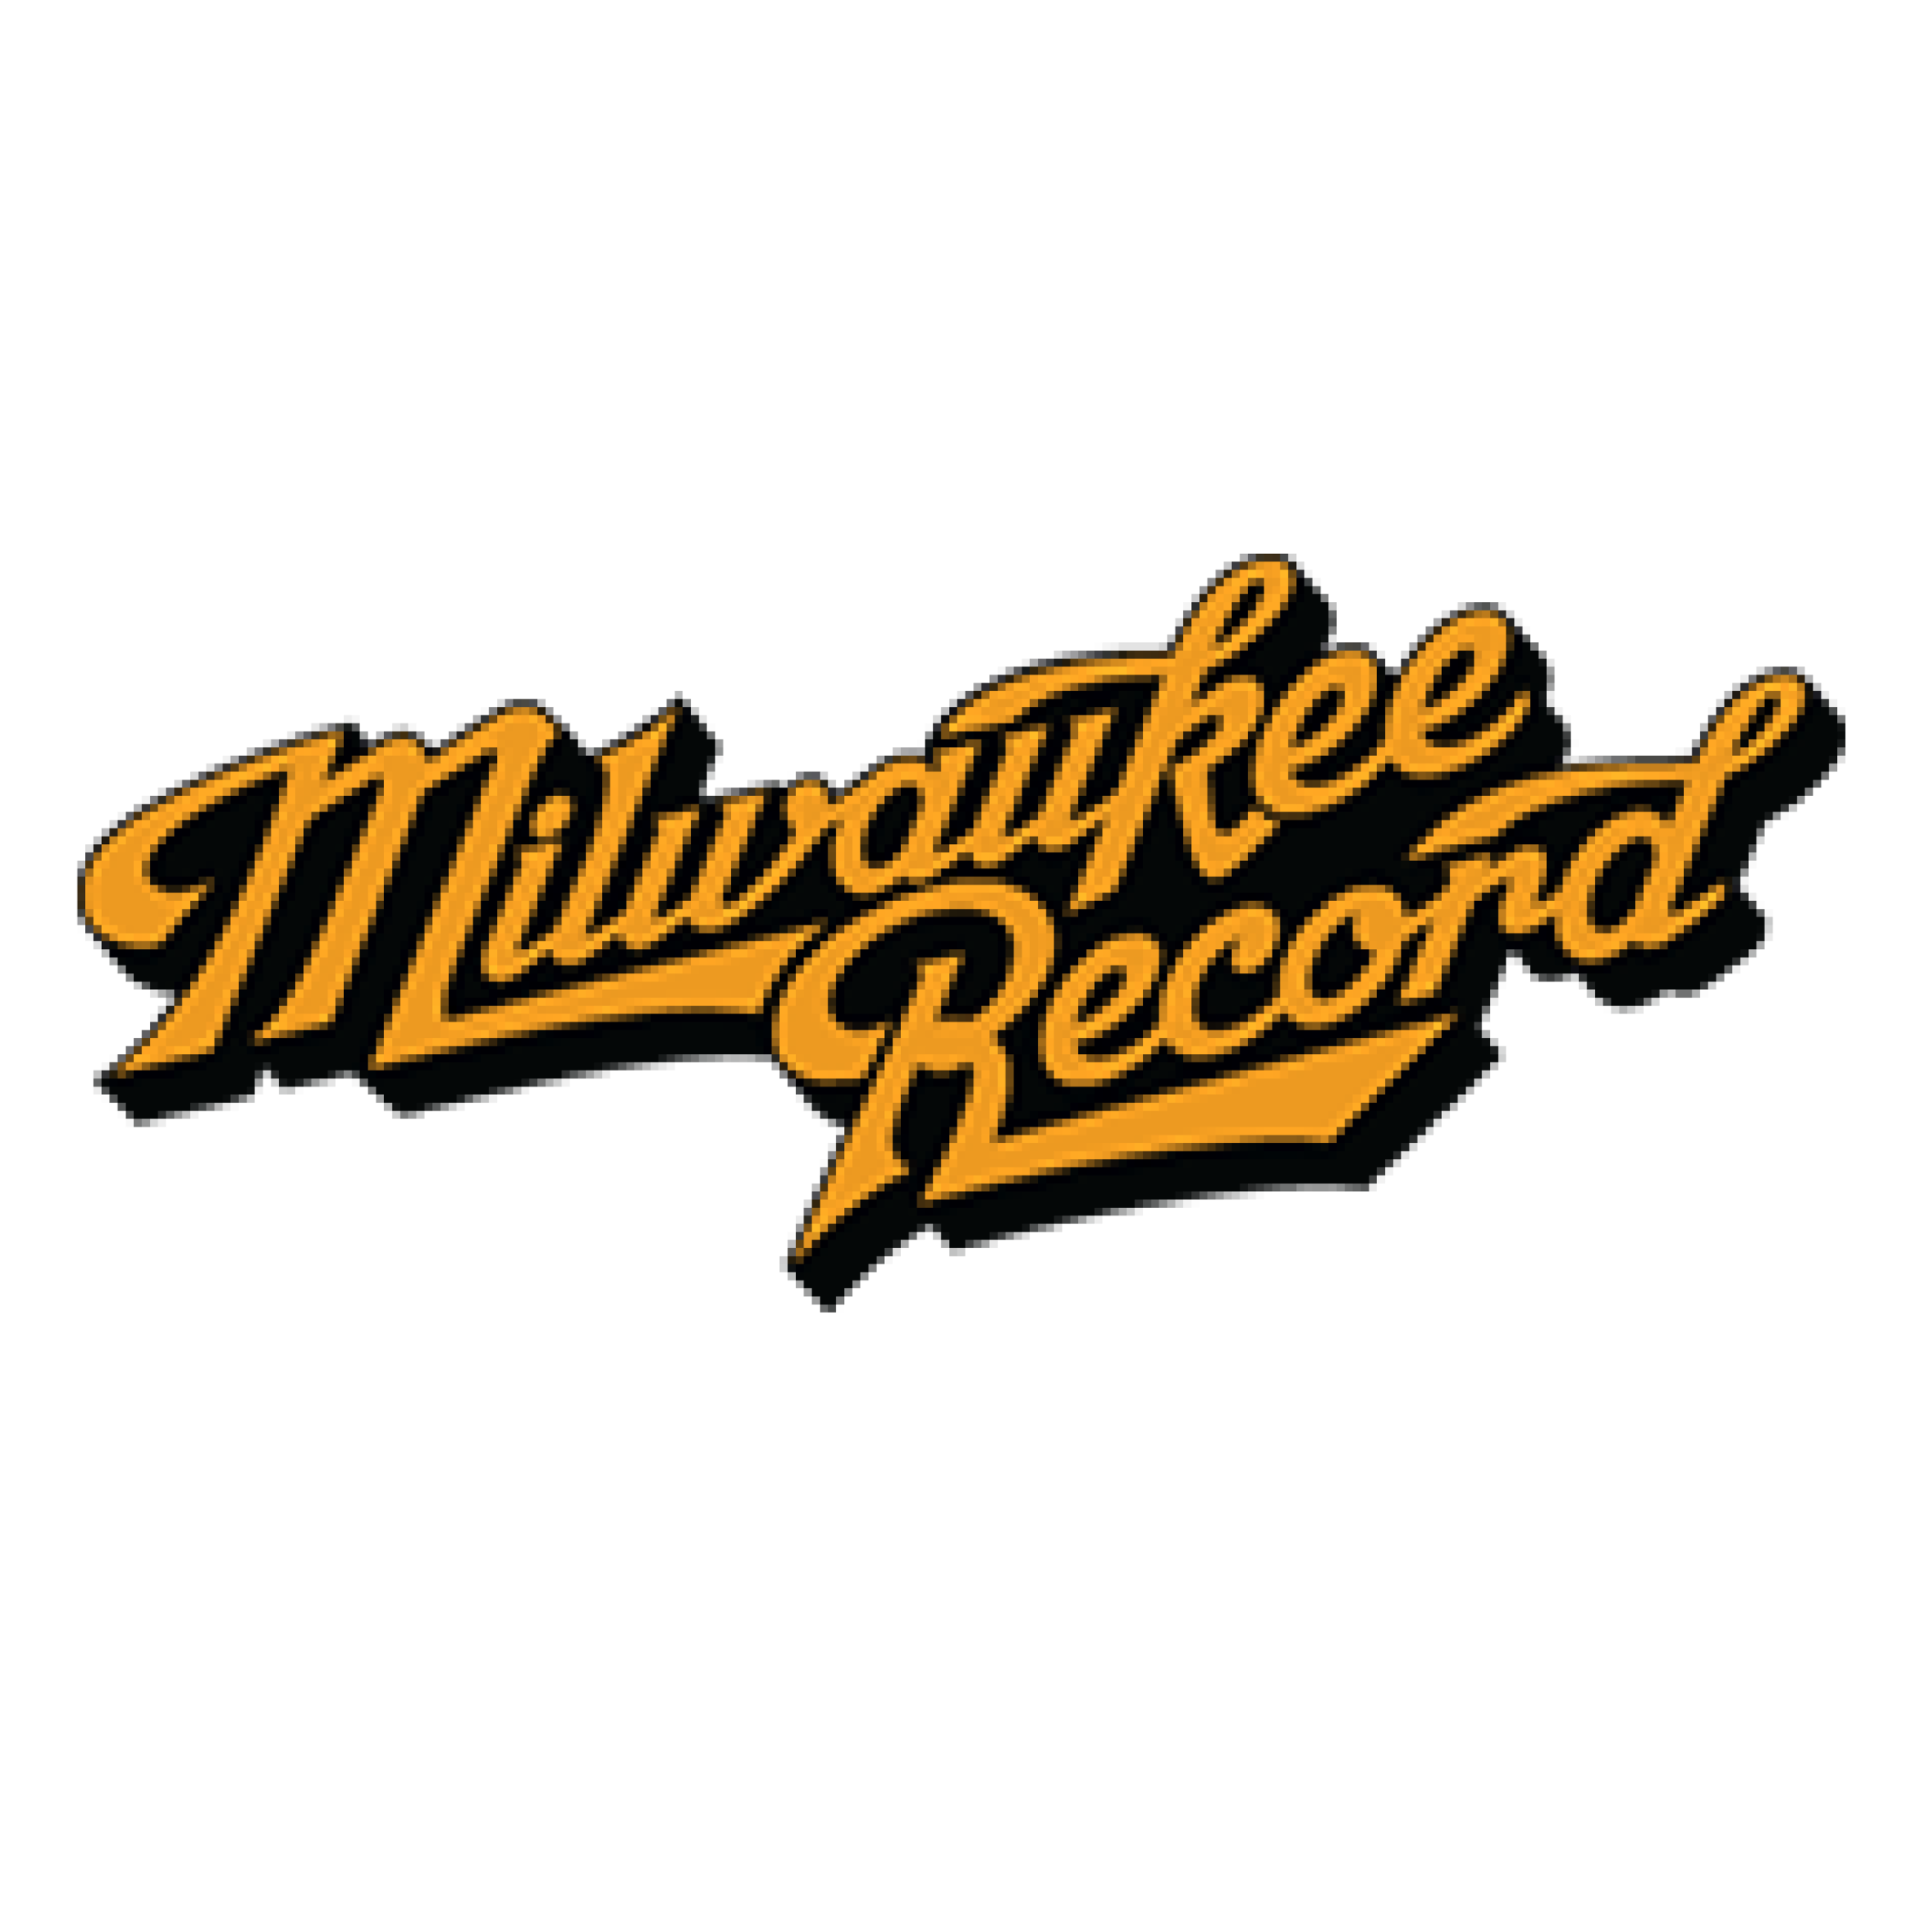 mkerecord.png